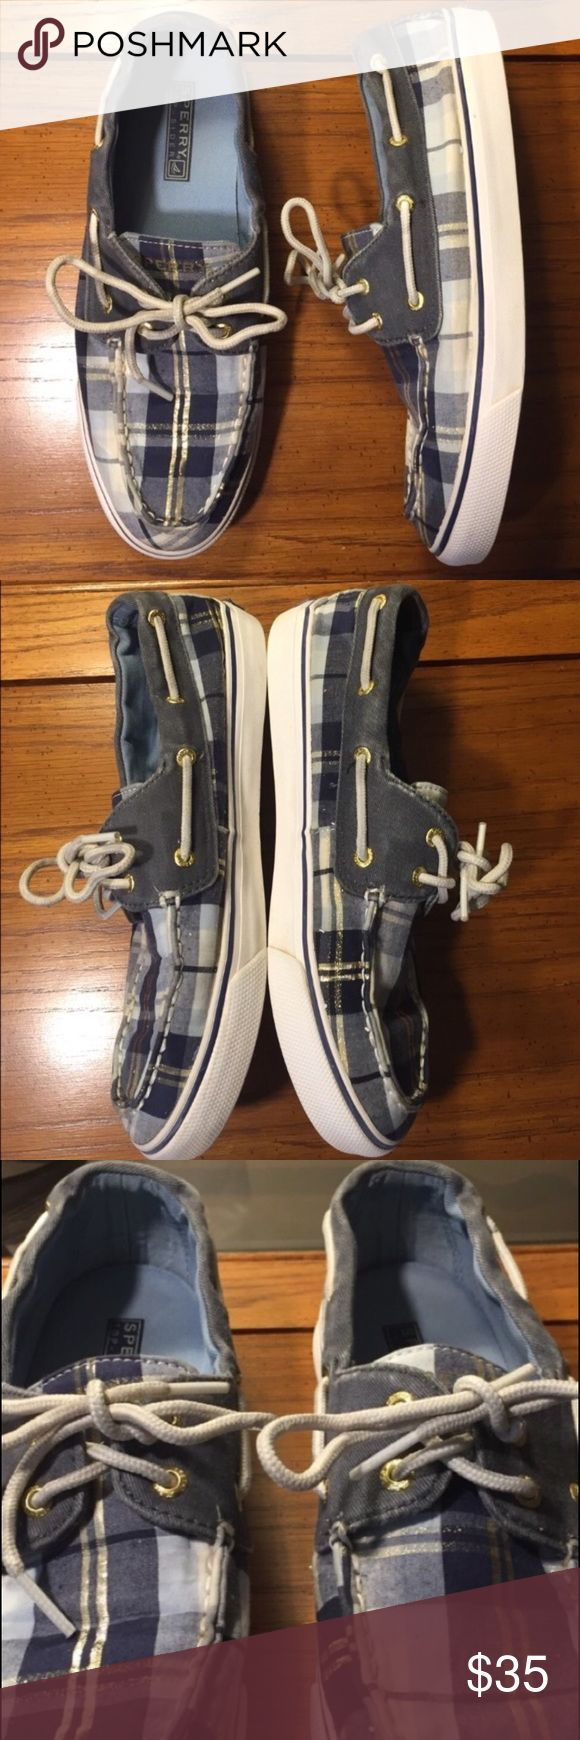 Women's Sperry Top-Sider Plaid Canvas Sneaker Women's Sperry Top-Sider Plaid Canvas Sneaker - size 8. Excellent condition women's boat shoes with gold stripe. Sperry Top-Sider Shoes Flats & Loafers